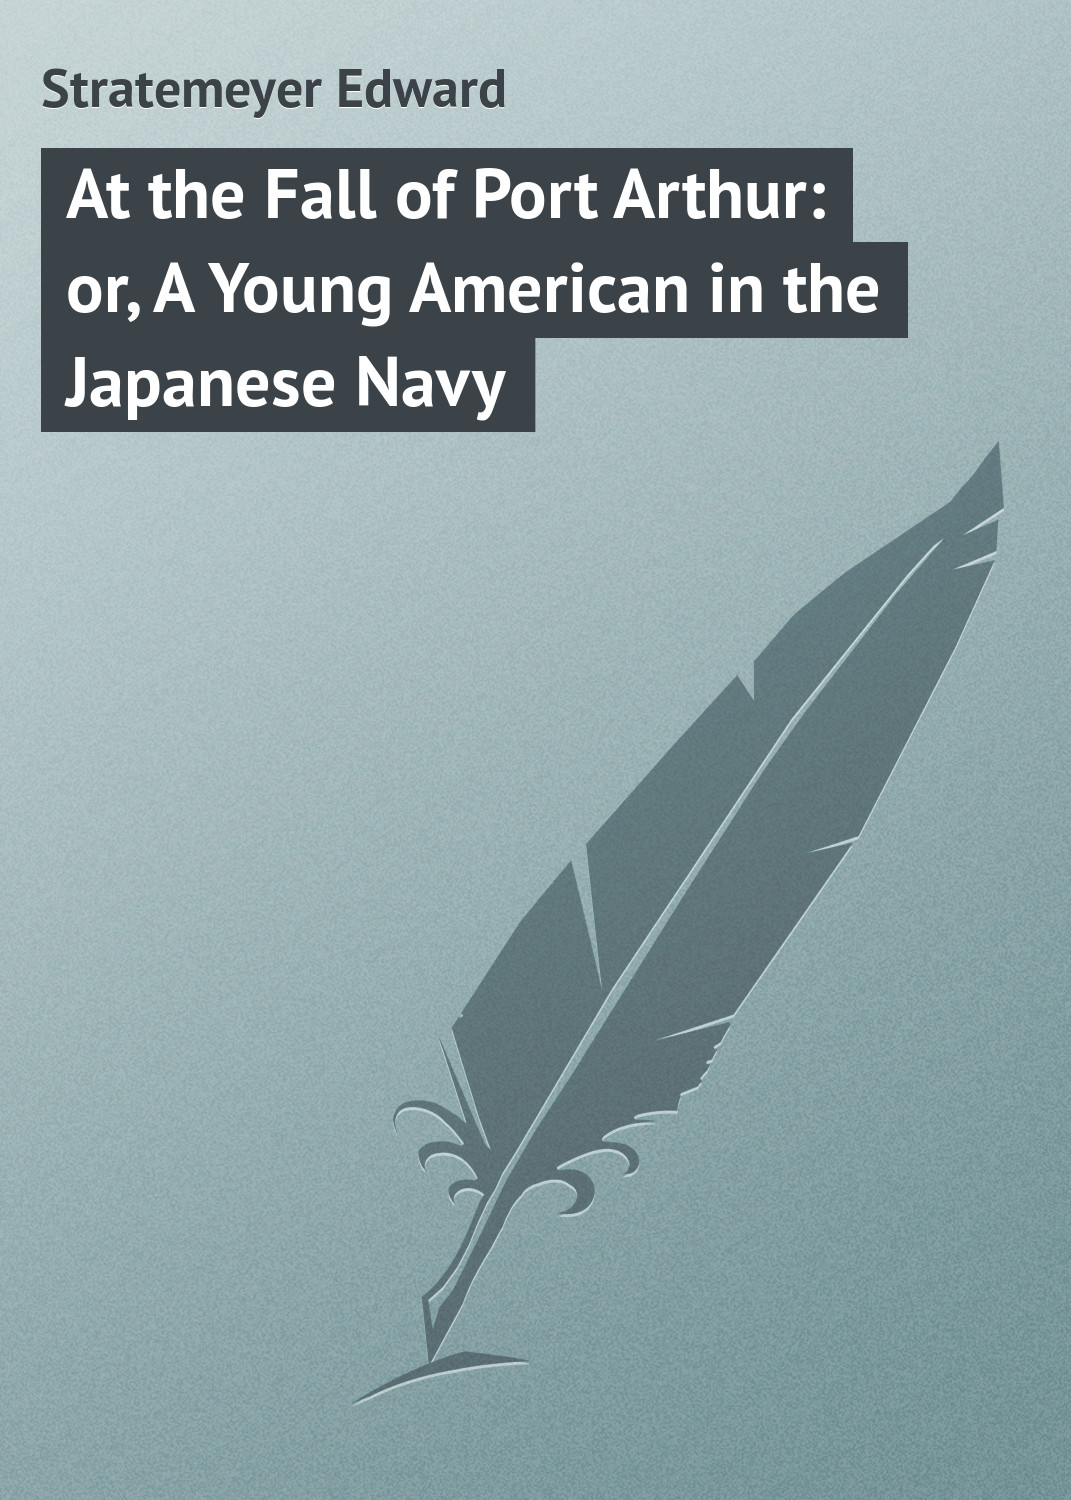 Stratemeyer Edward At the Fall of Port Arthur: or, A Young American in the Japanese Navy stratemeyer edward dave porter and the runaways or last days at oak hall